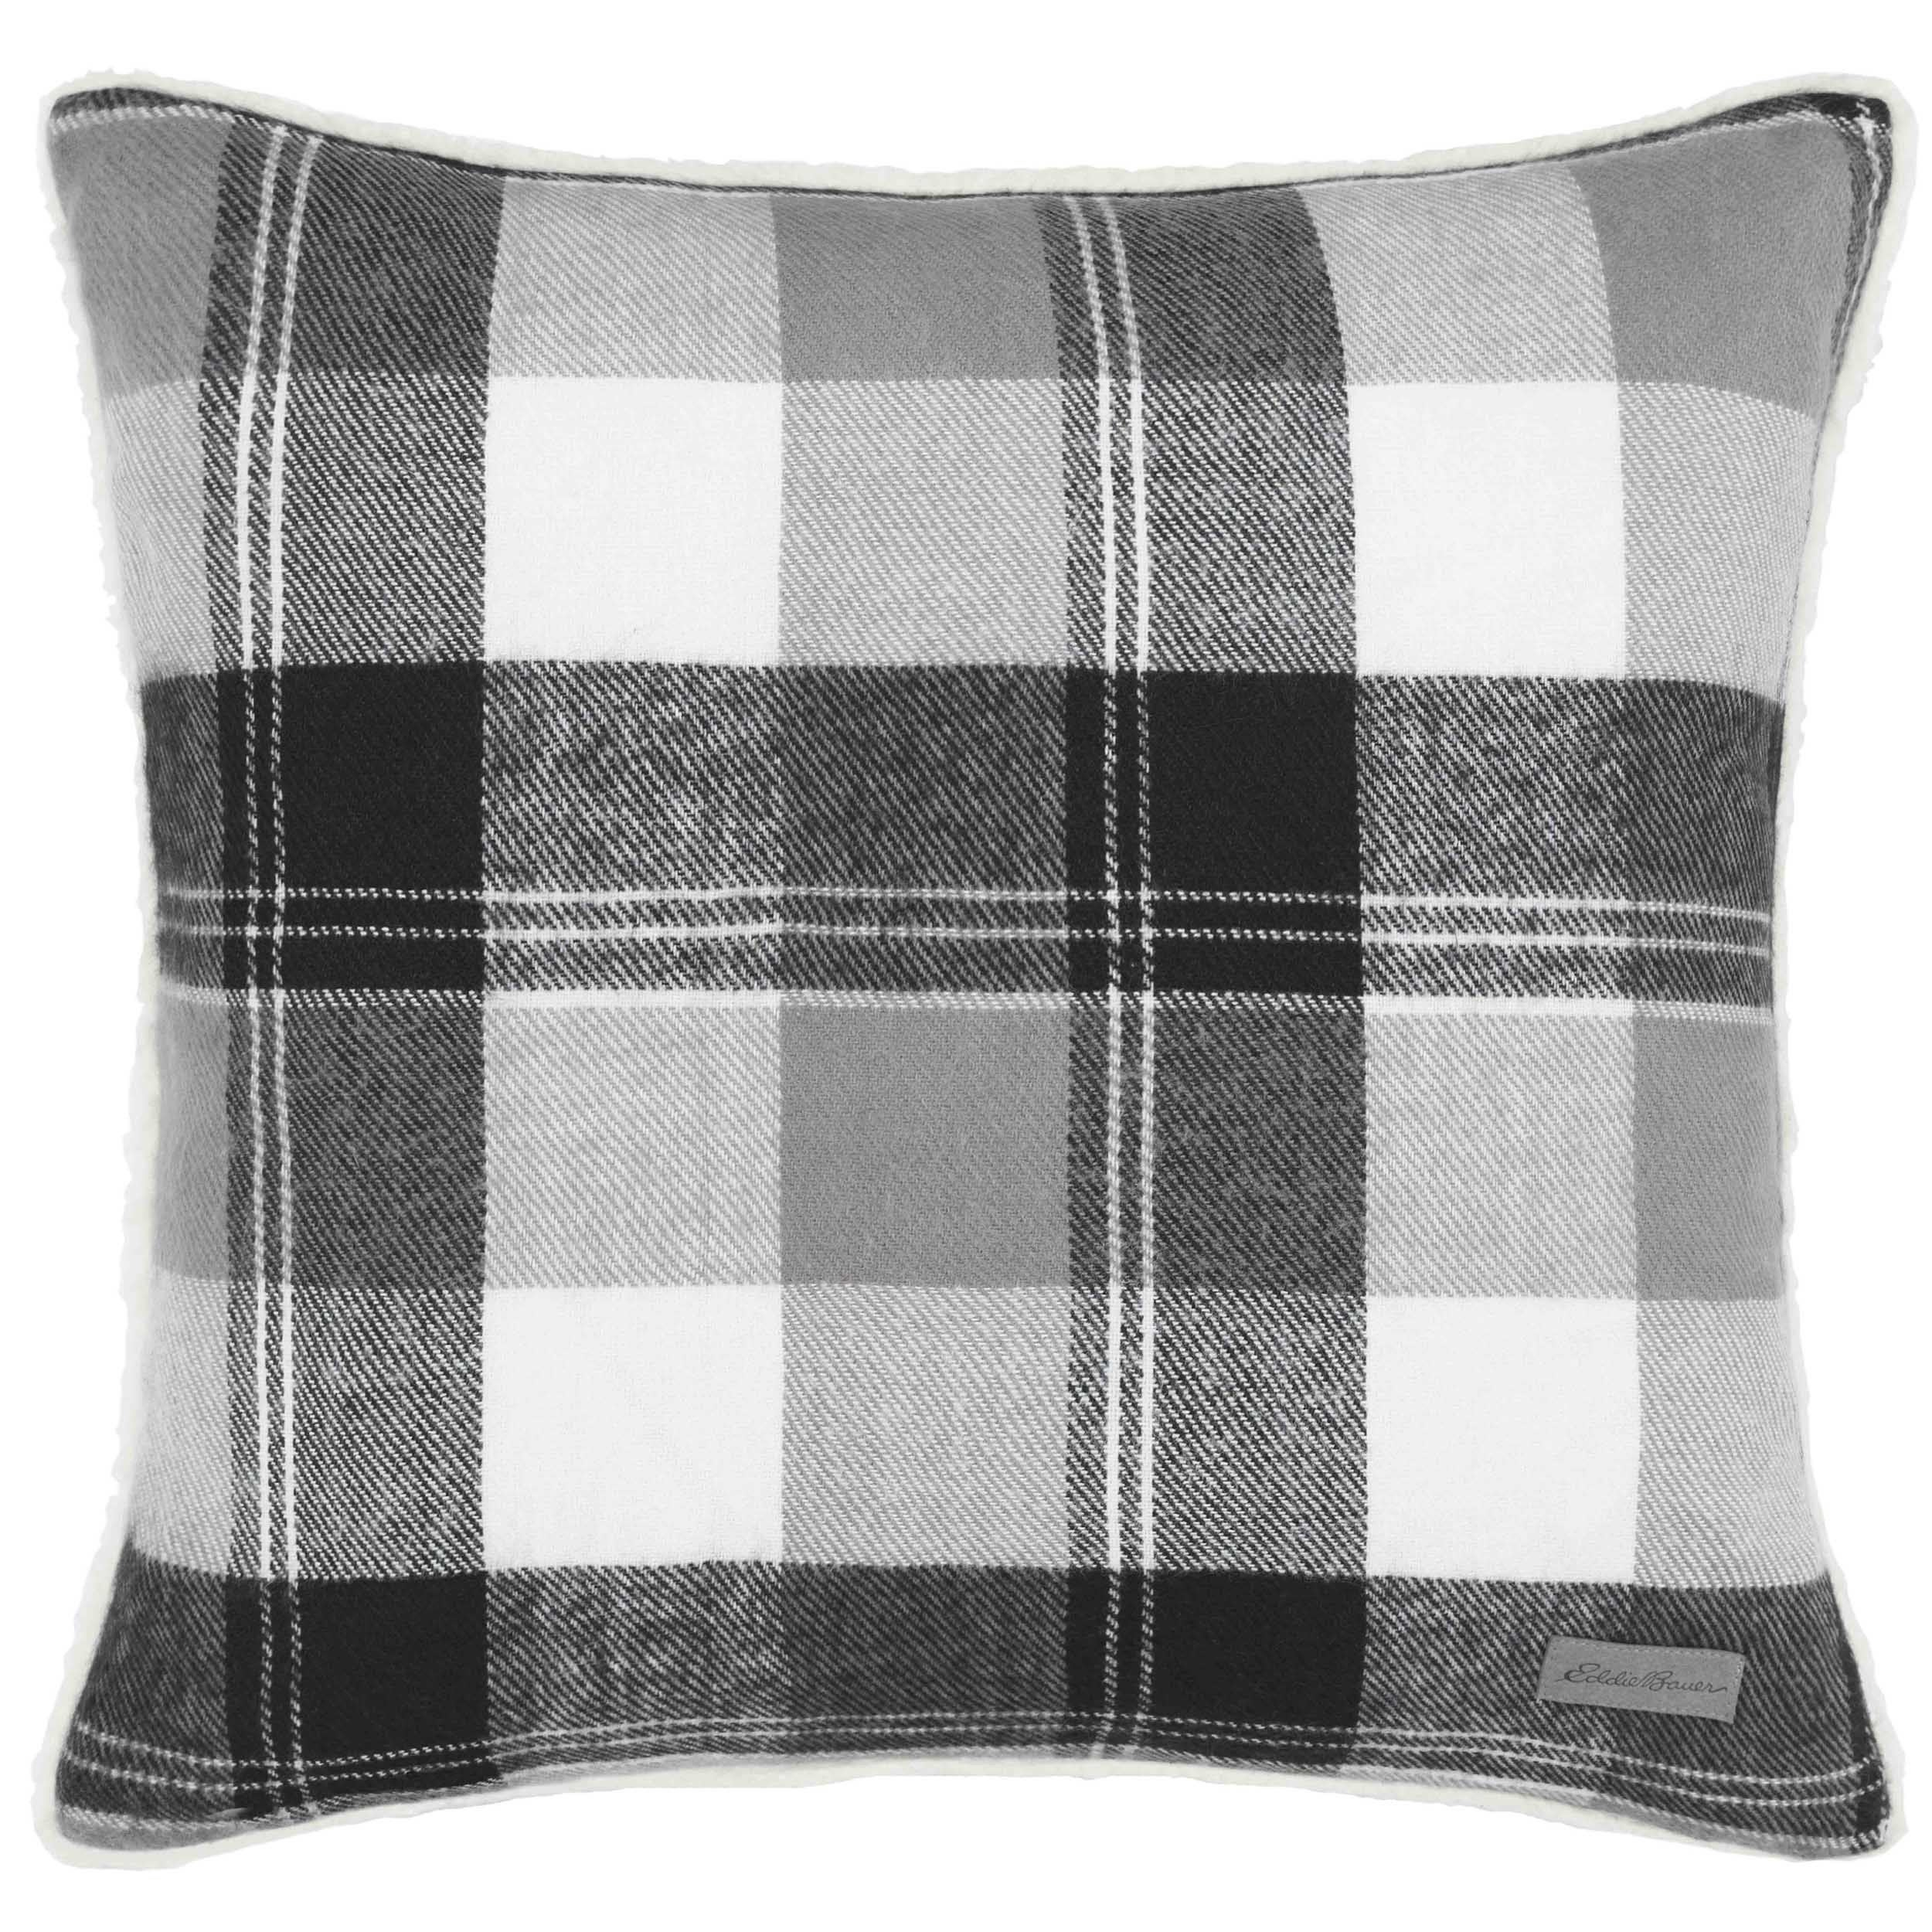 Eddie Bauer Lodge Grey Plaid Throw Pillow - Free Shipping On ...